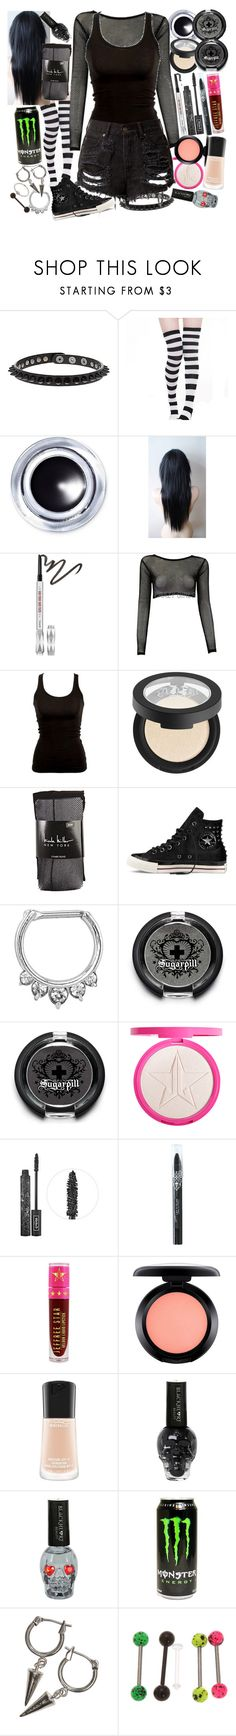 """READ D PLZ ""I just don't give a fxck, and if I ever gave a fxck, I would be straight out of luck"""" by thelyricsmatter ❤ liked on Polyvore featuring Topshop, Smashbox, Benefit, Kat Von D, Nicole Miller, Converse, Target, Sugarpill, Jeffree Star and MAC Cosmetics"